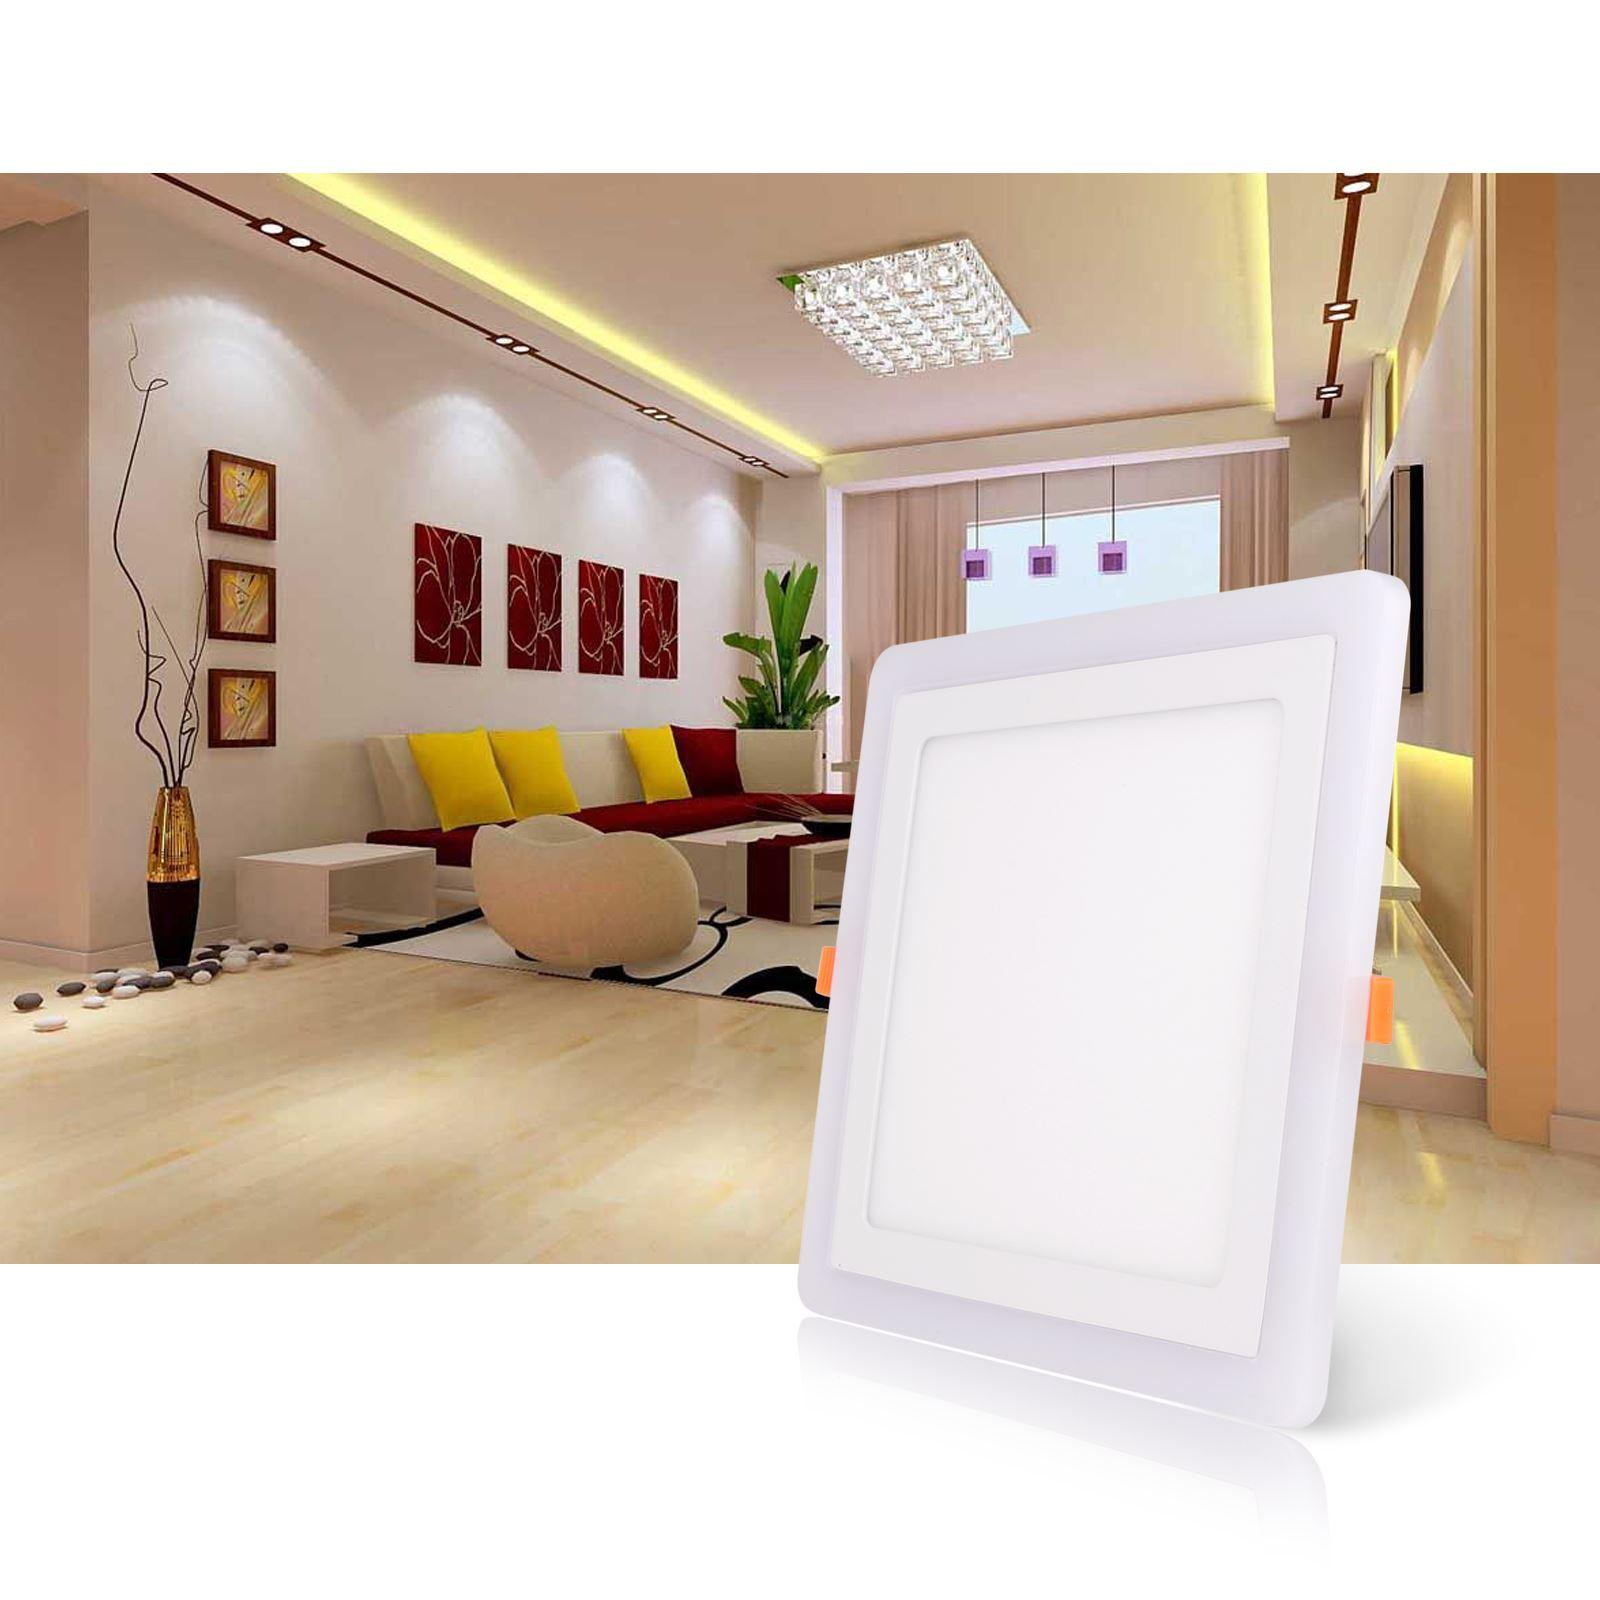 Home Office Club New Arrvial Rgbw Dual Color Led Ceiling Recessed Square Panel Downlight Spot Light Lamp For Home Office Club Ce Rohs Listed